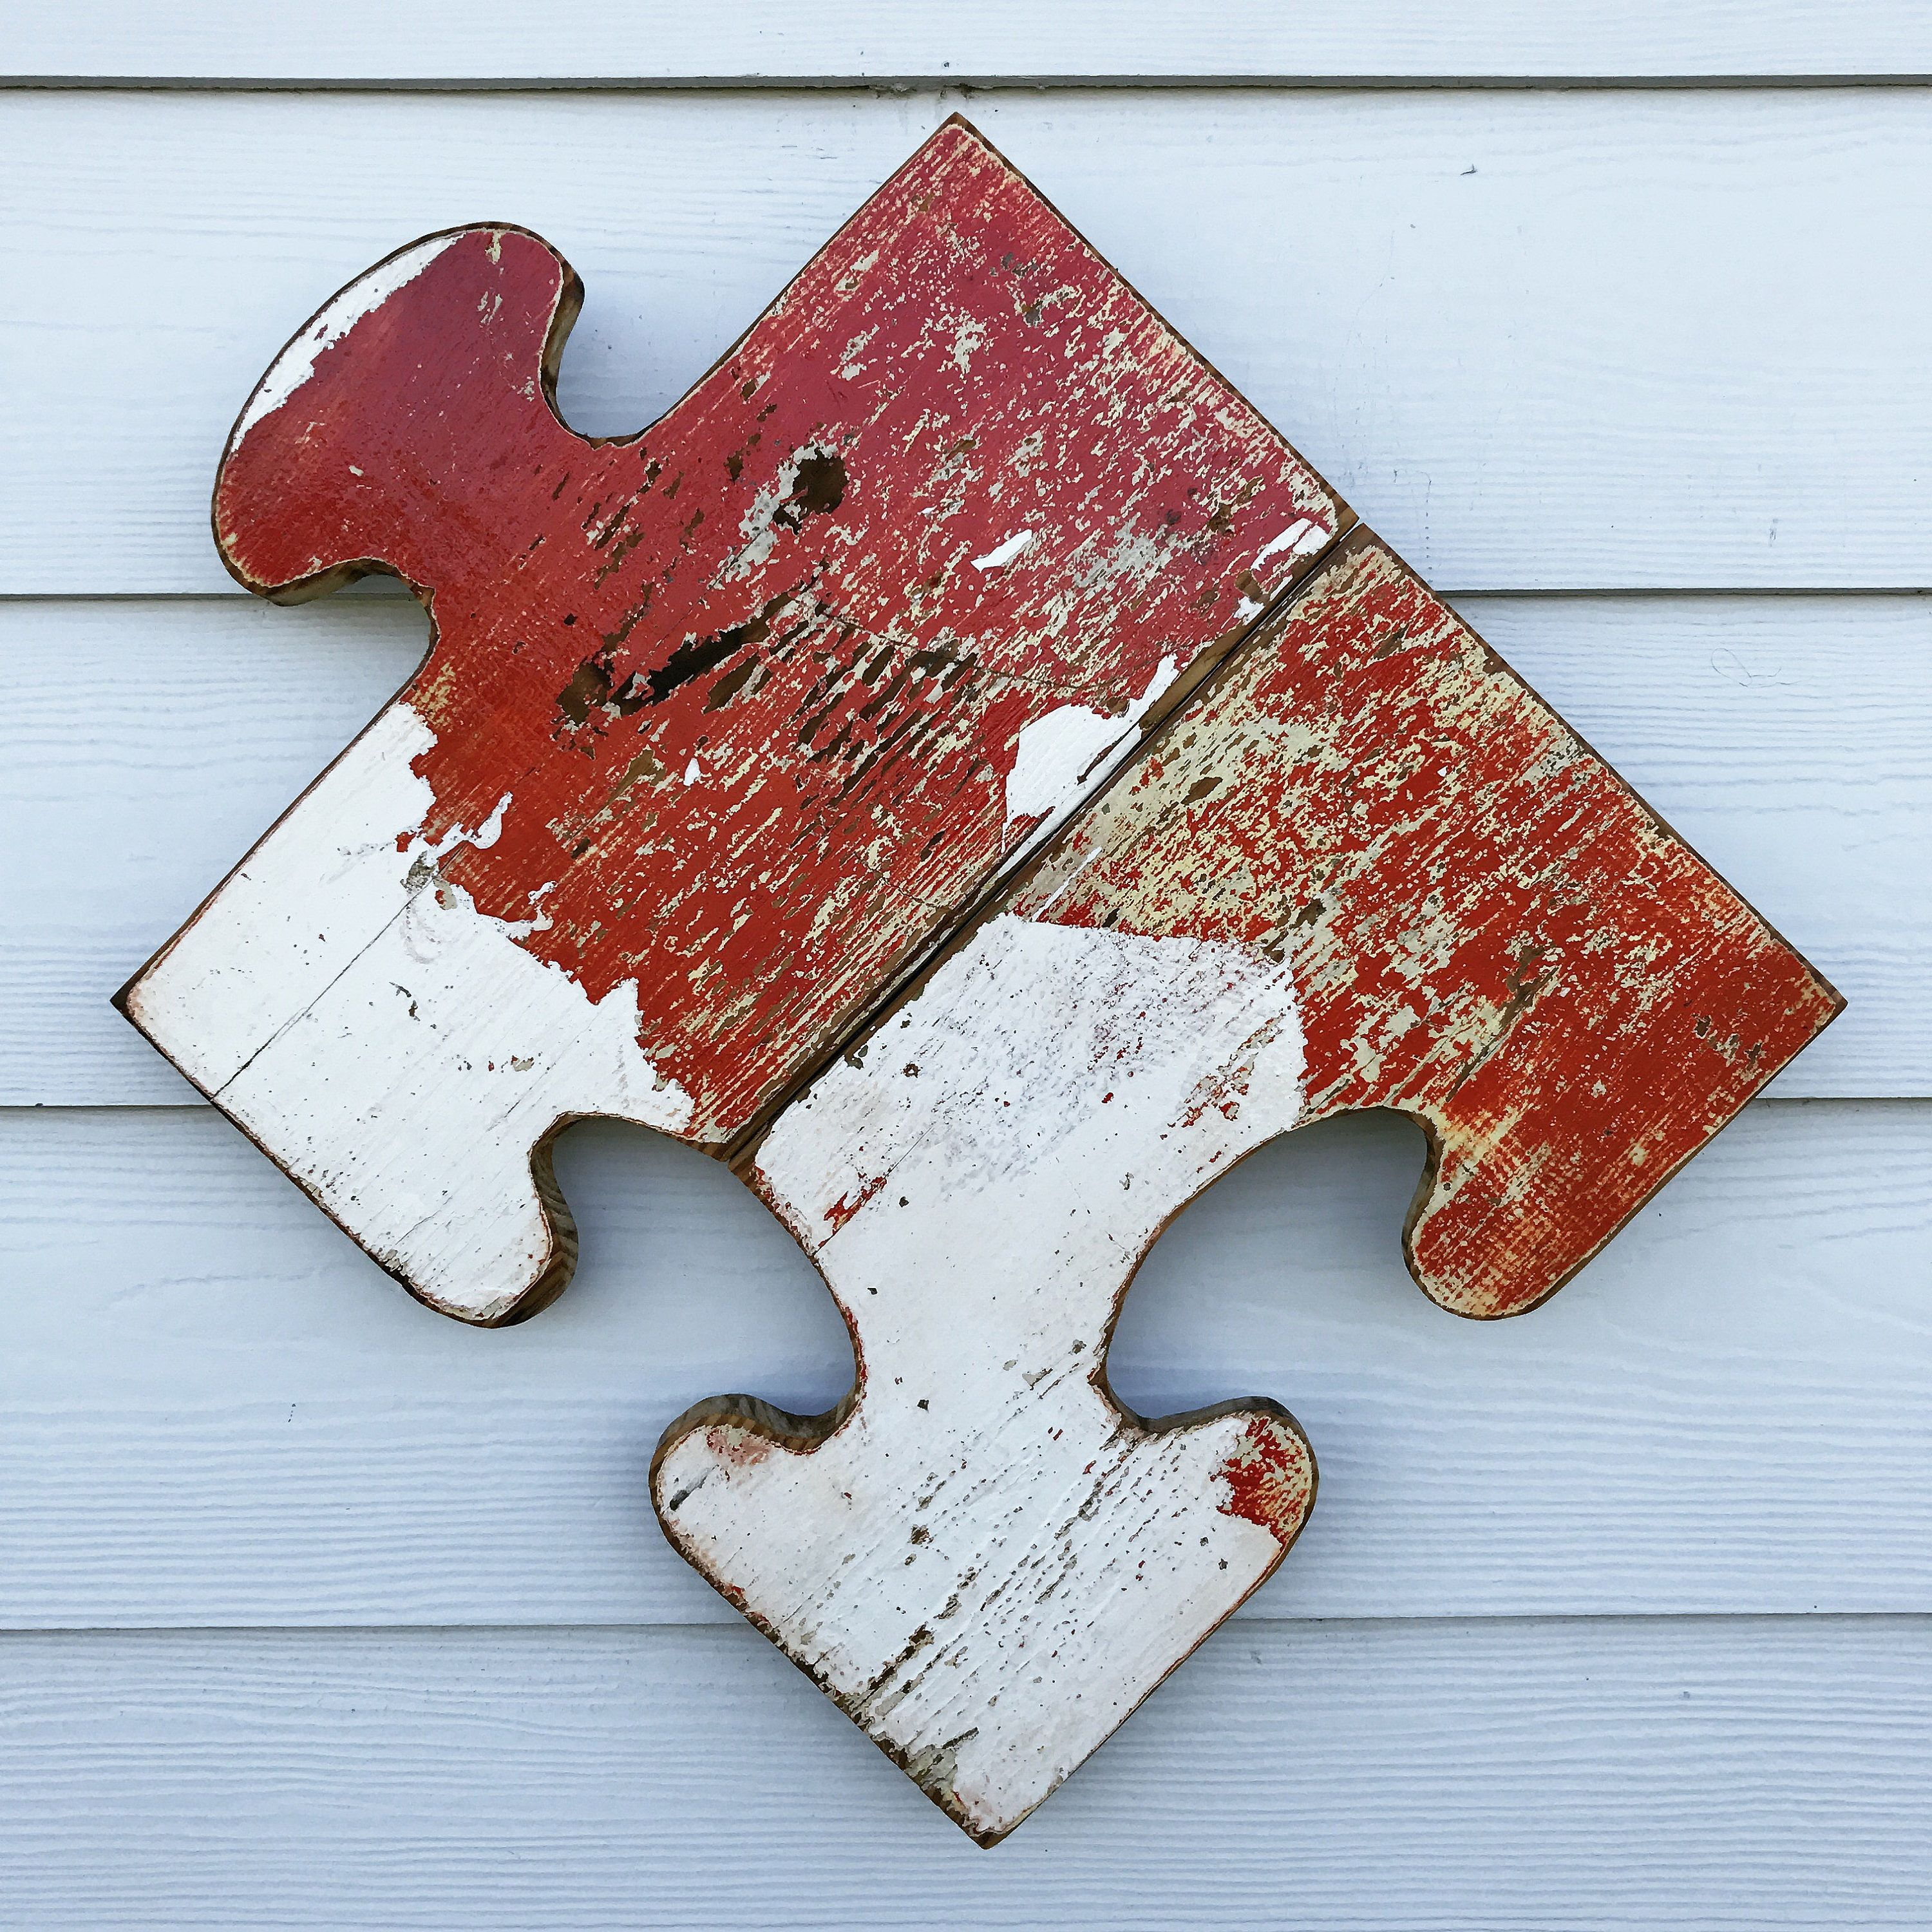 Puzzle Piece Wall Decor reclaimed wood puzzle piece sign, rustic decor, recycled wood